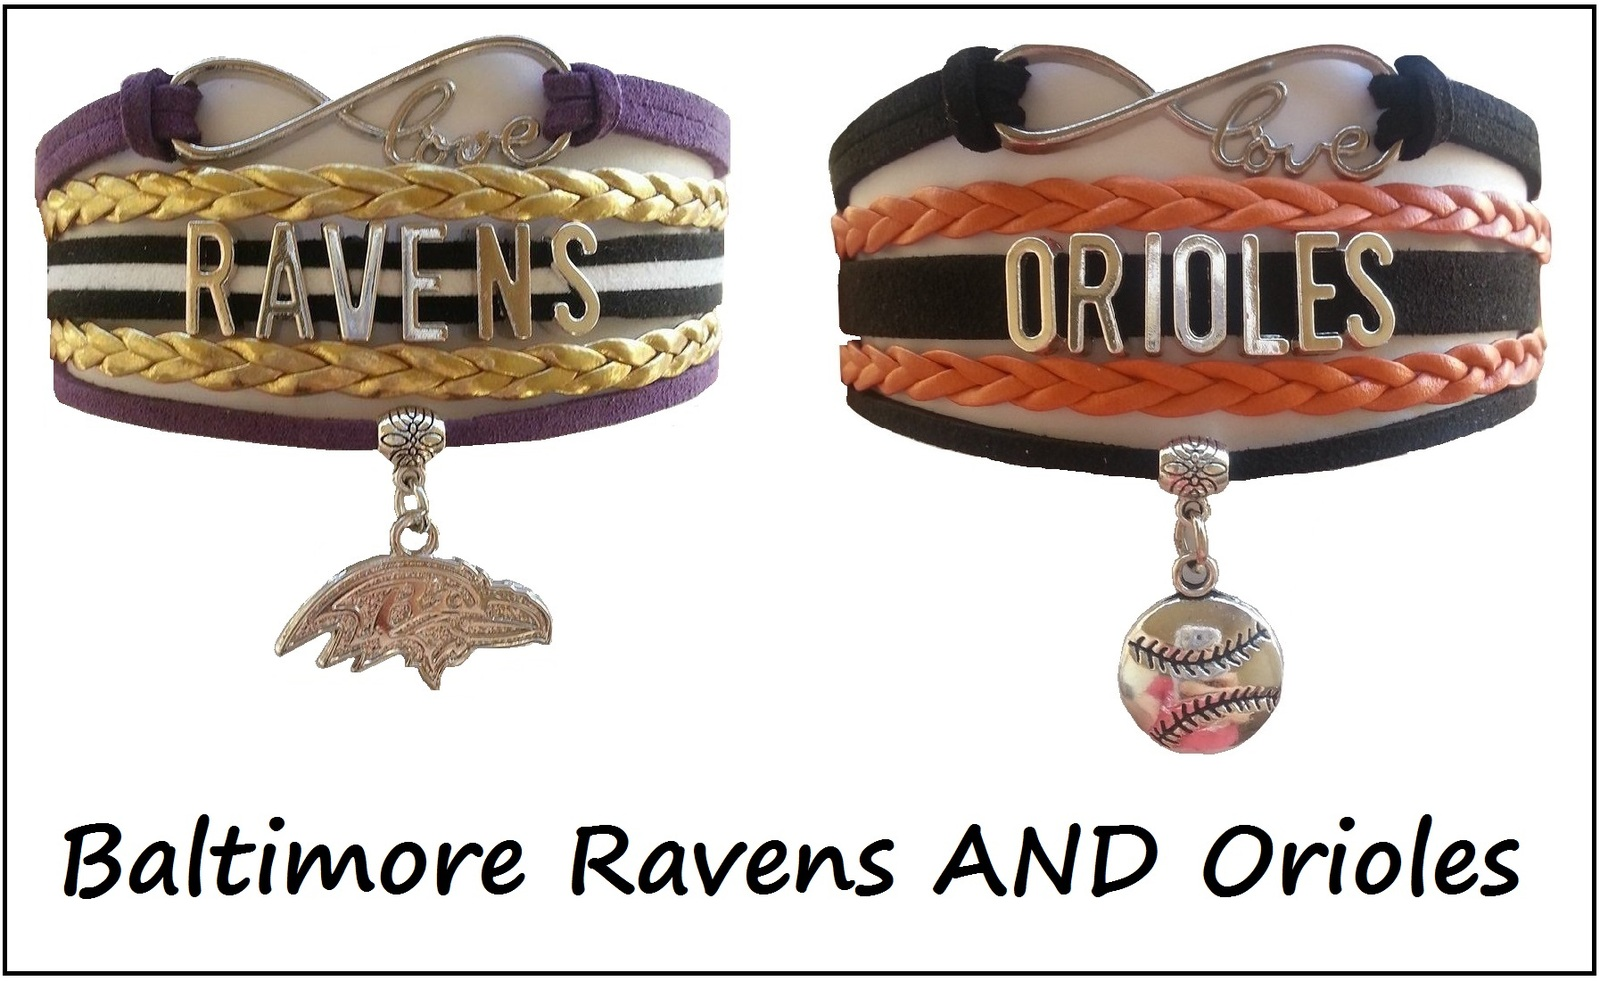 Baltimore Sports Infinity Love Bracelet 2 Pack Gift Special - Ravens AND Orioles